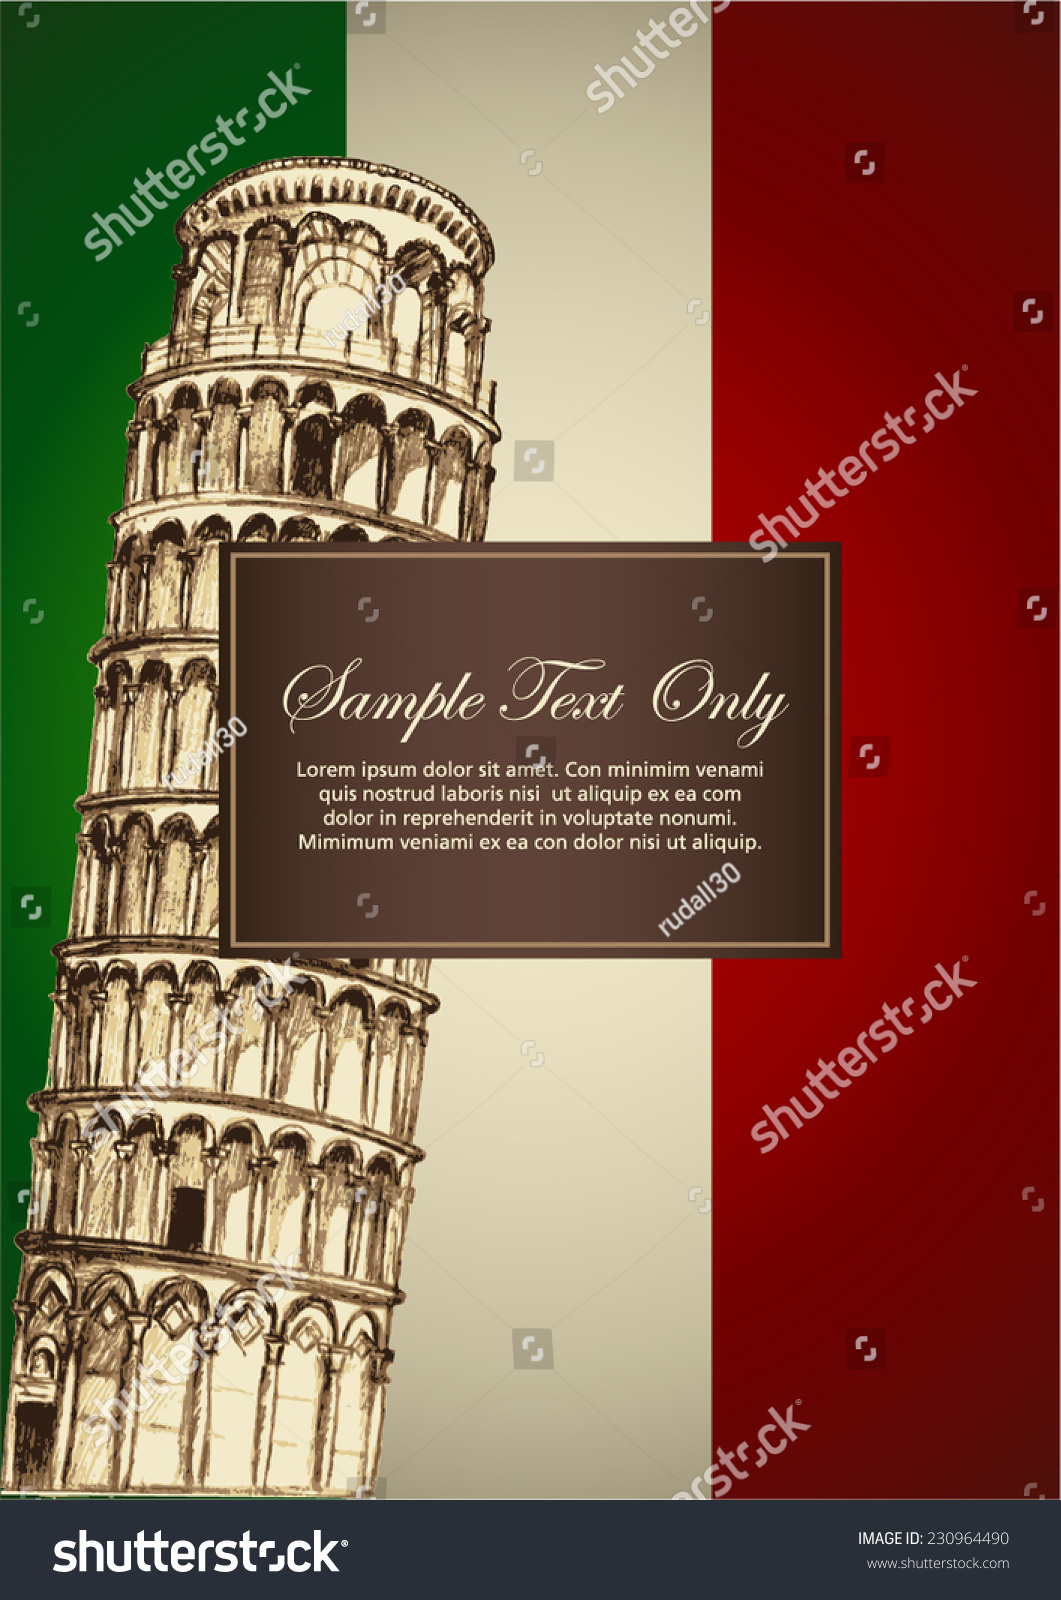 Italian Menu Cover Design | www.imgkid.com - The Image Kid ...